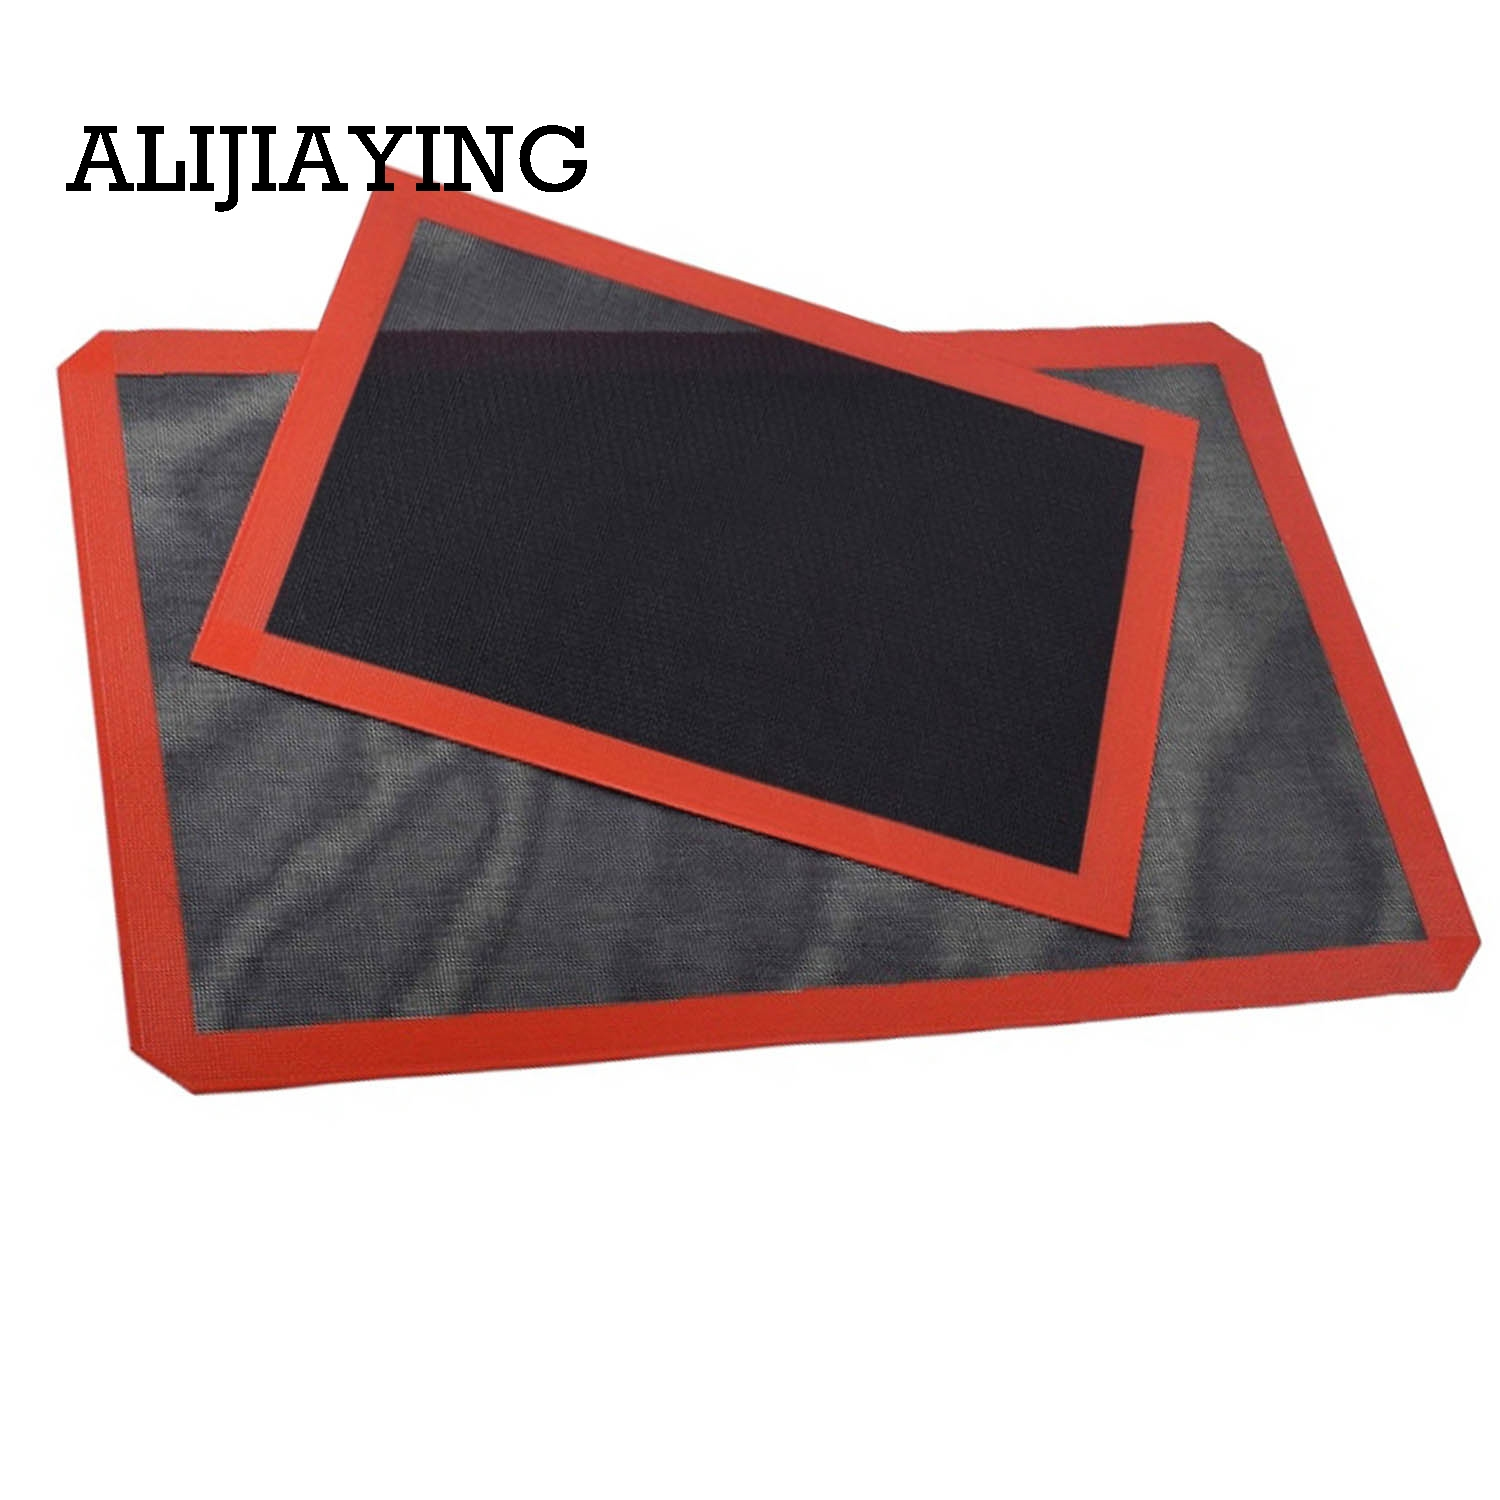 Non-Stick Baking Oven Sheet Liner For Cookie Perforated Silicone Baking Mats